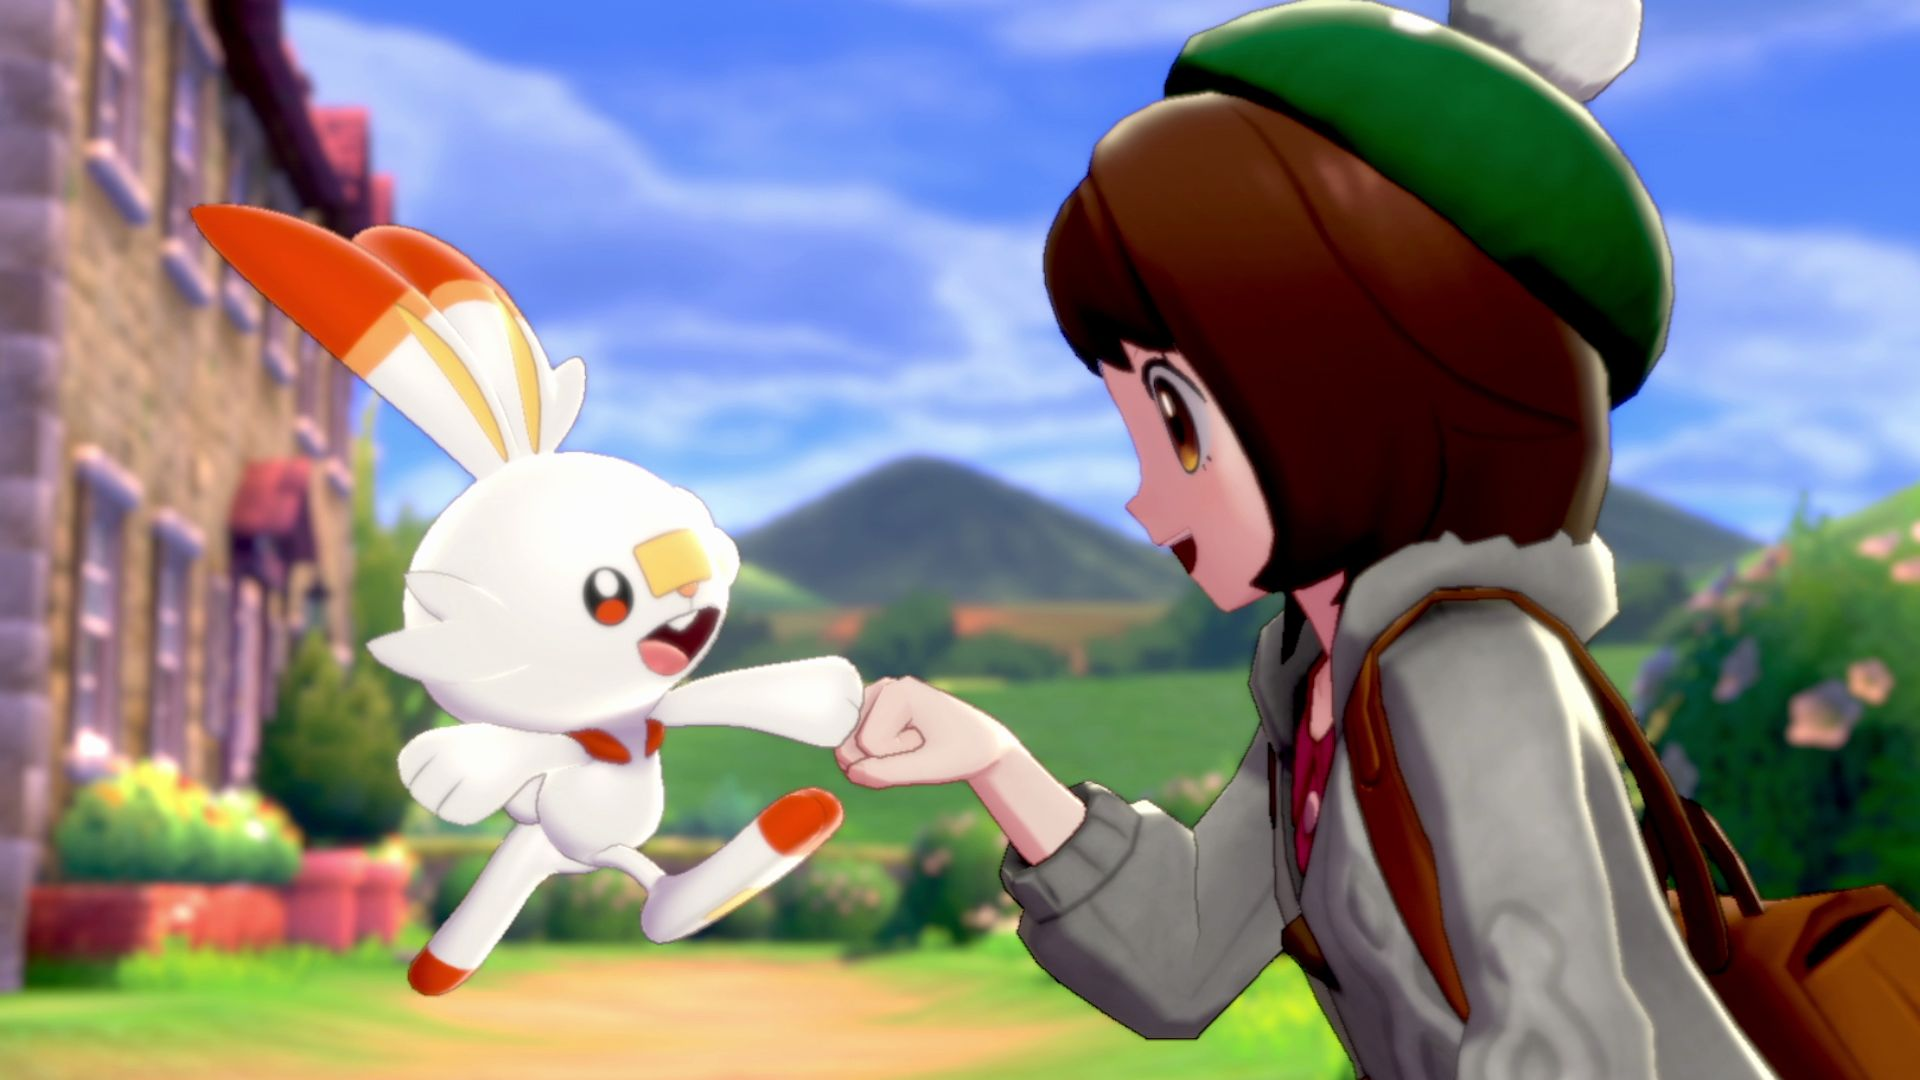 Pokémon Sword and Shield Will Have 18 Gyms